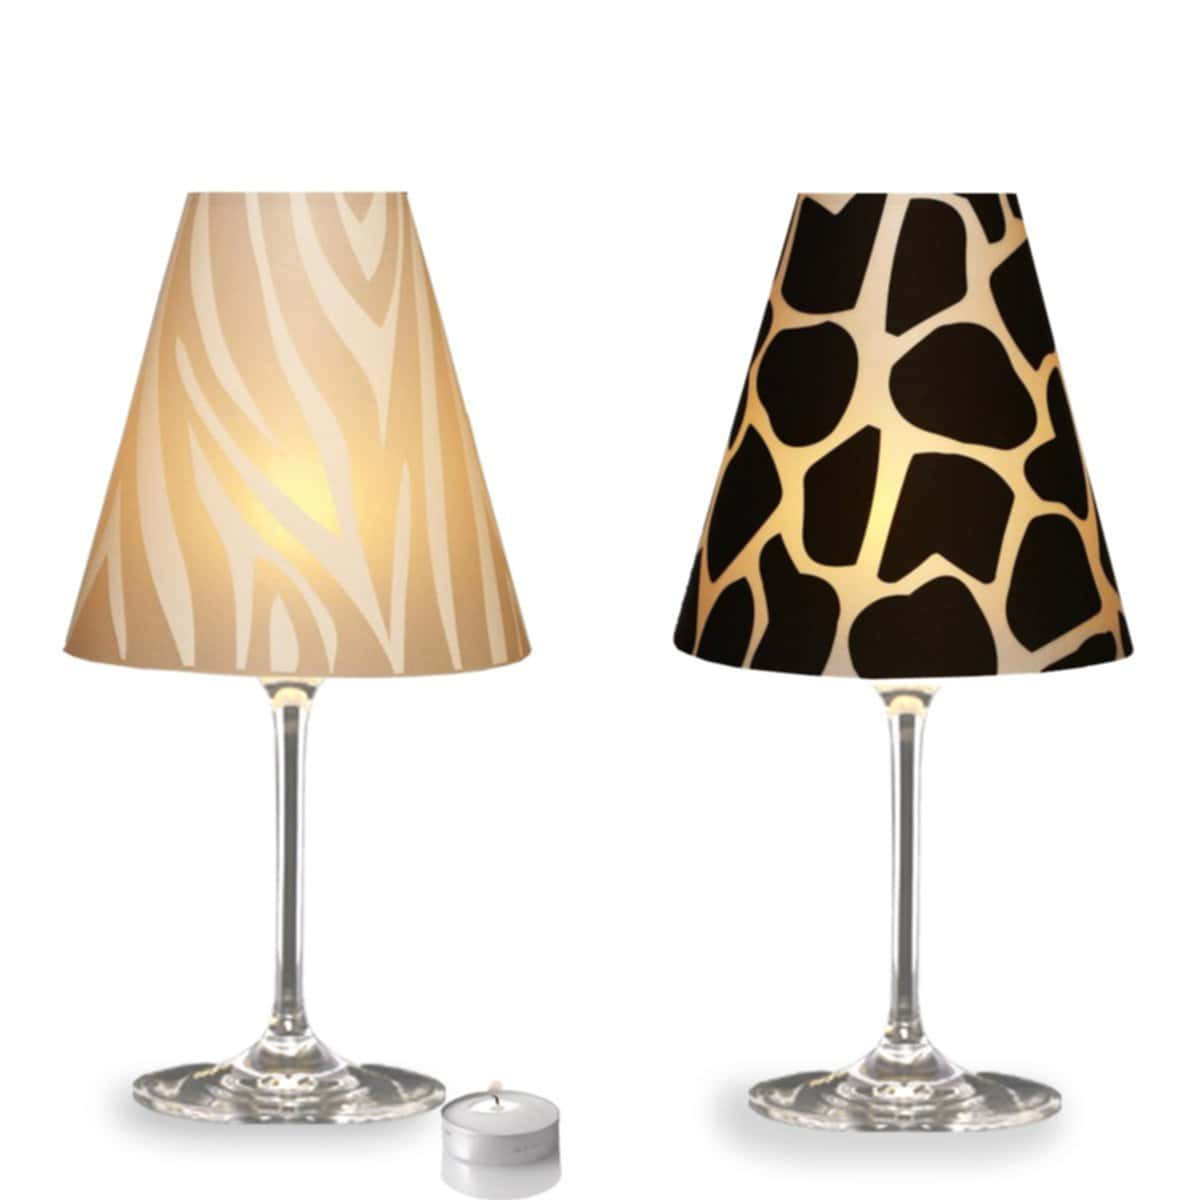 Beautiful Glass Lamp Shades